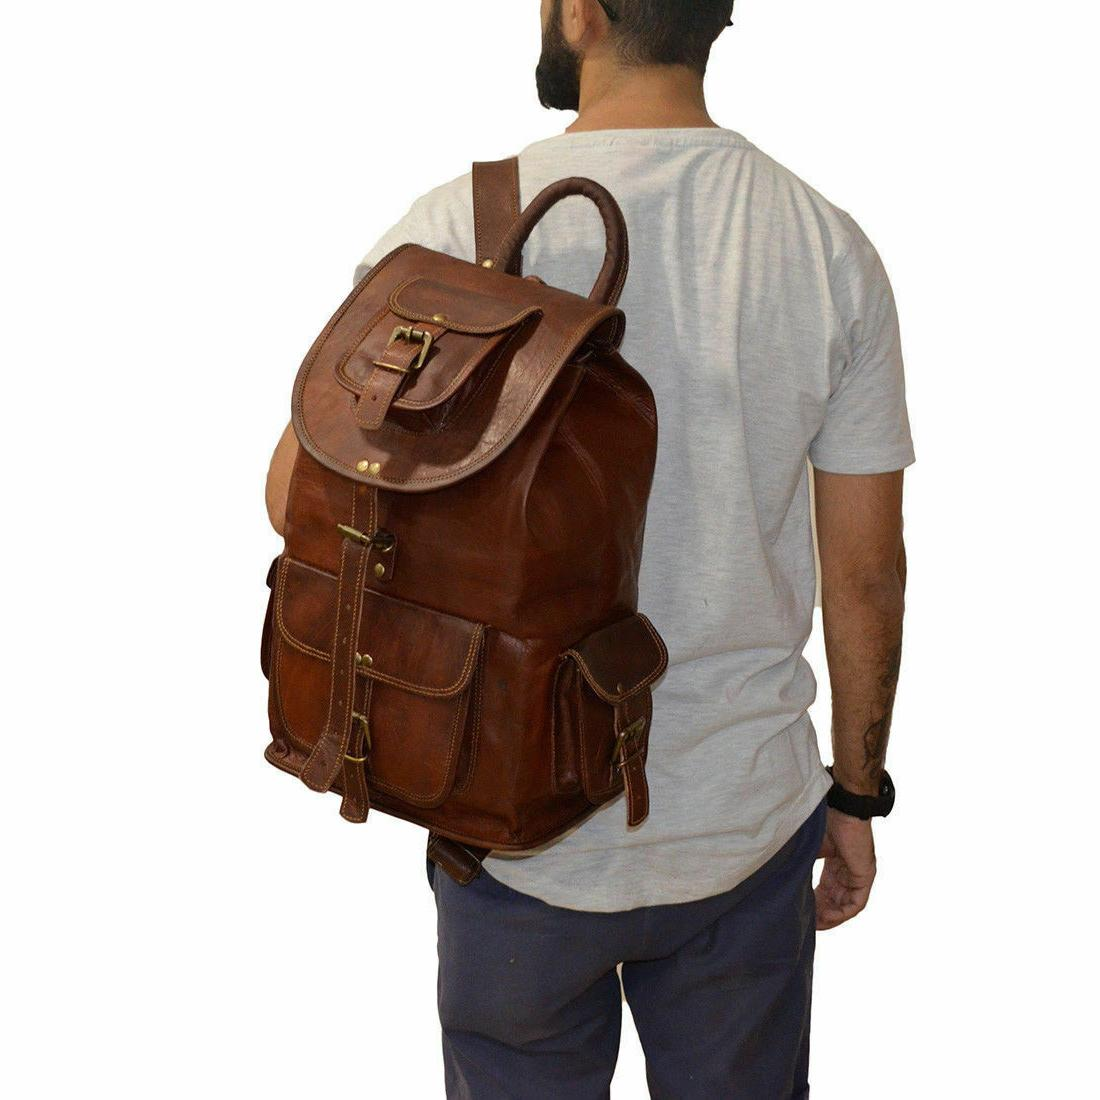 20 new large genuine leather back pack